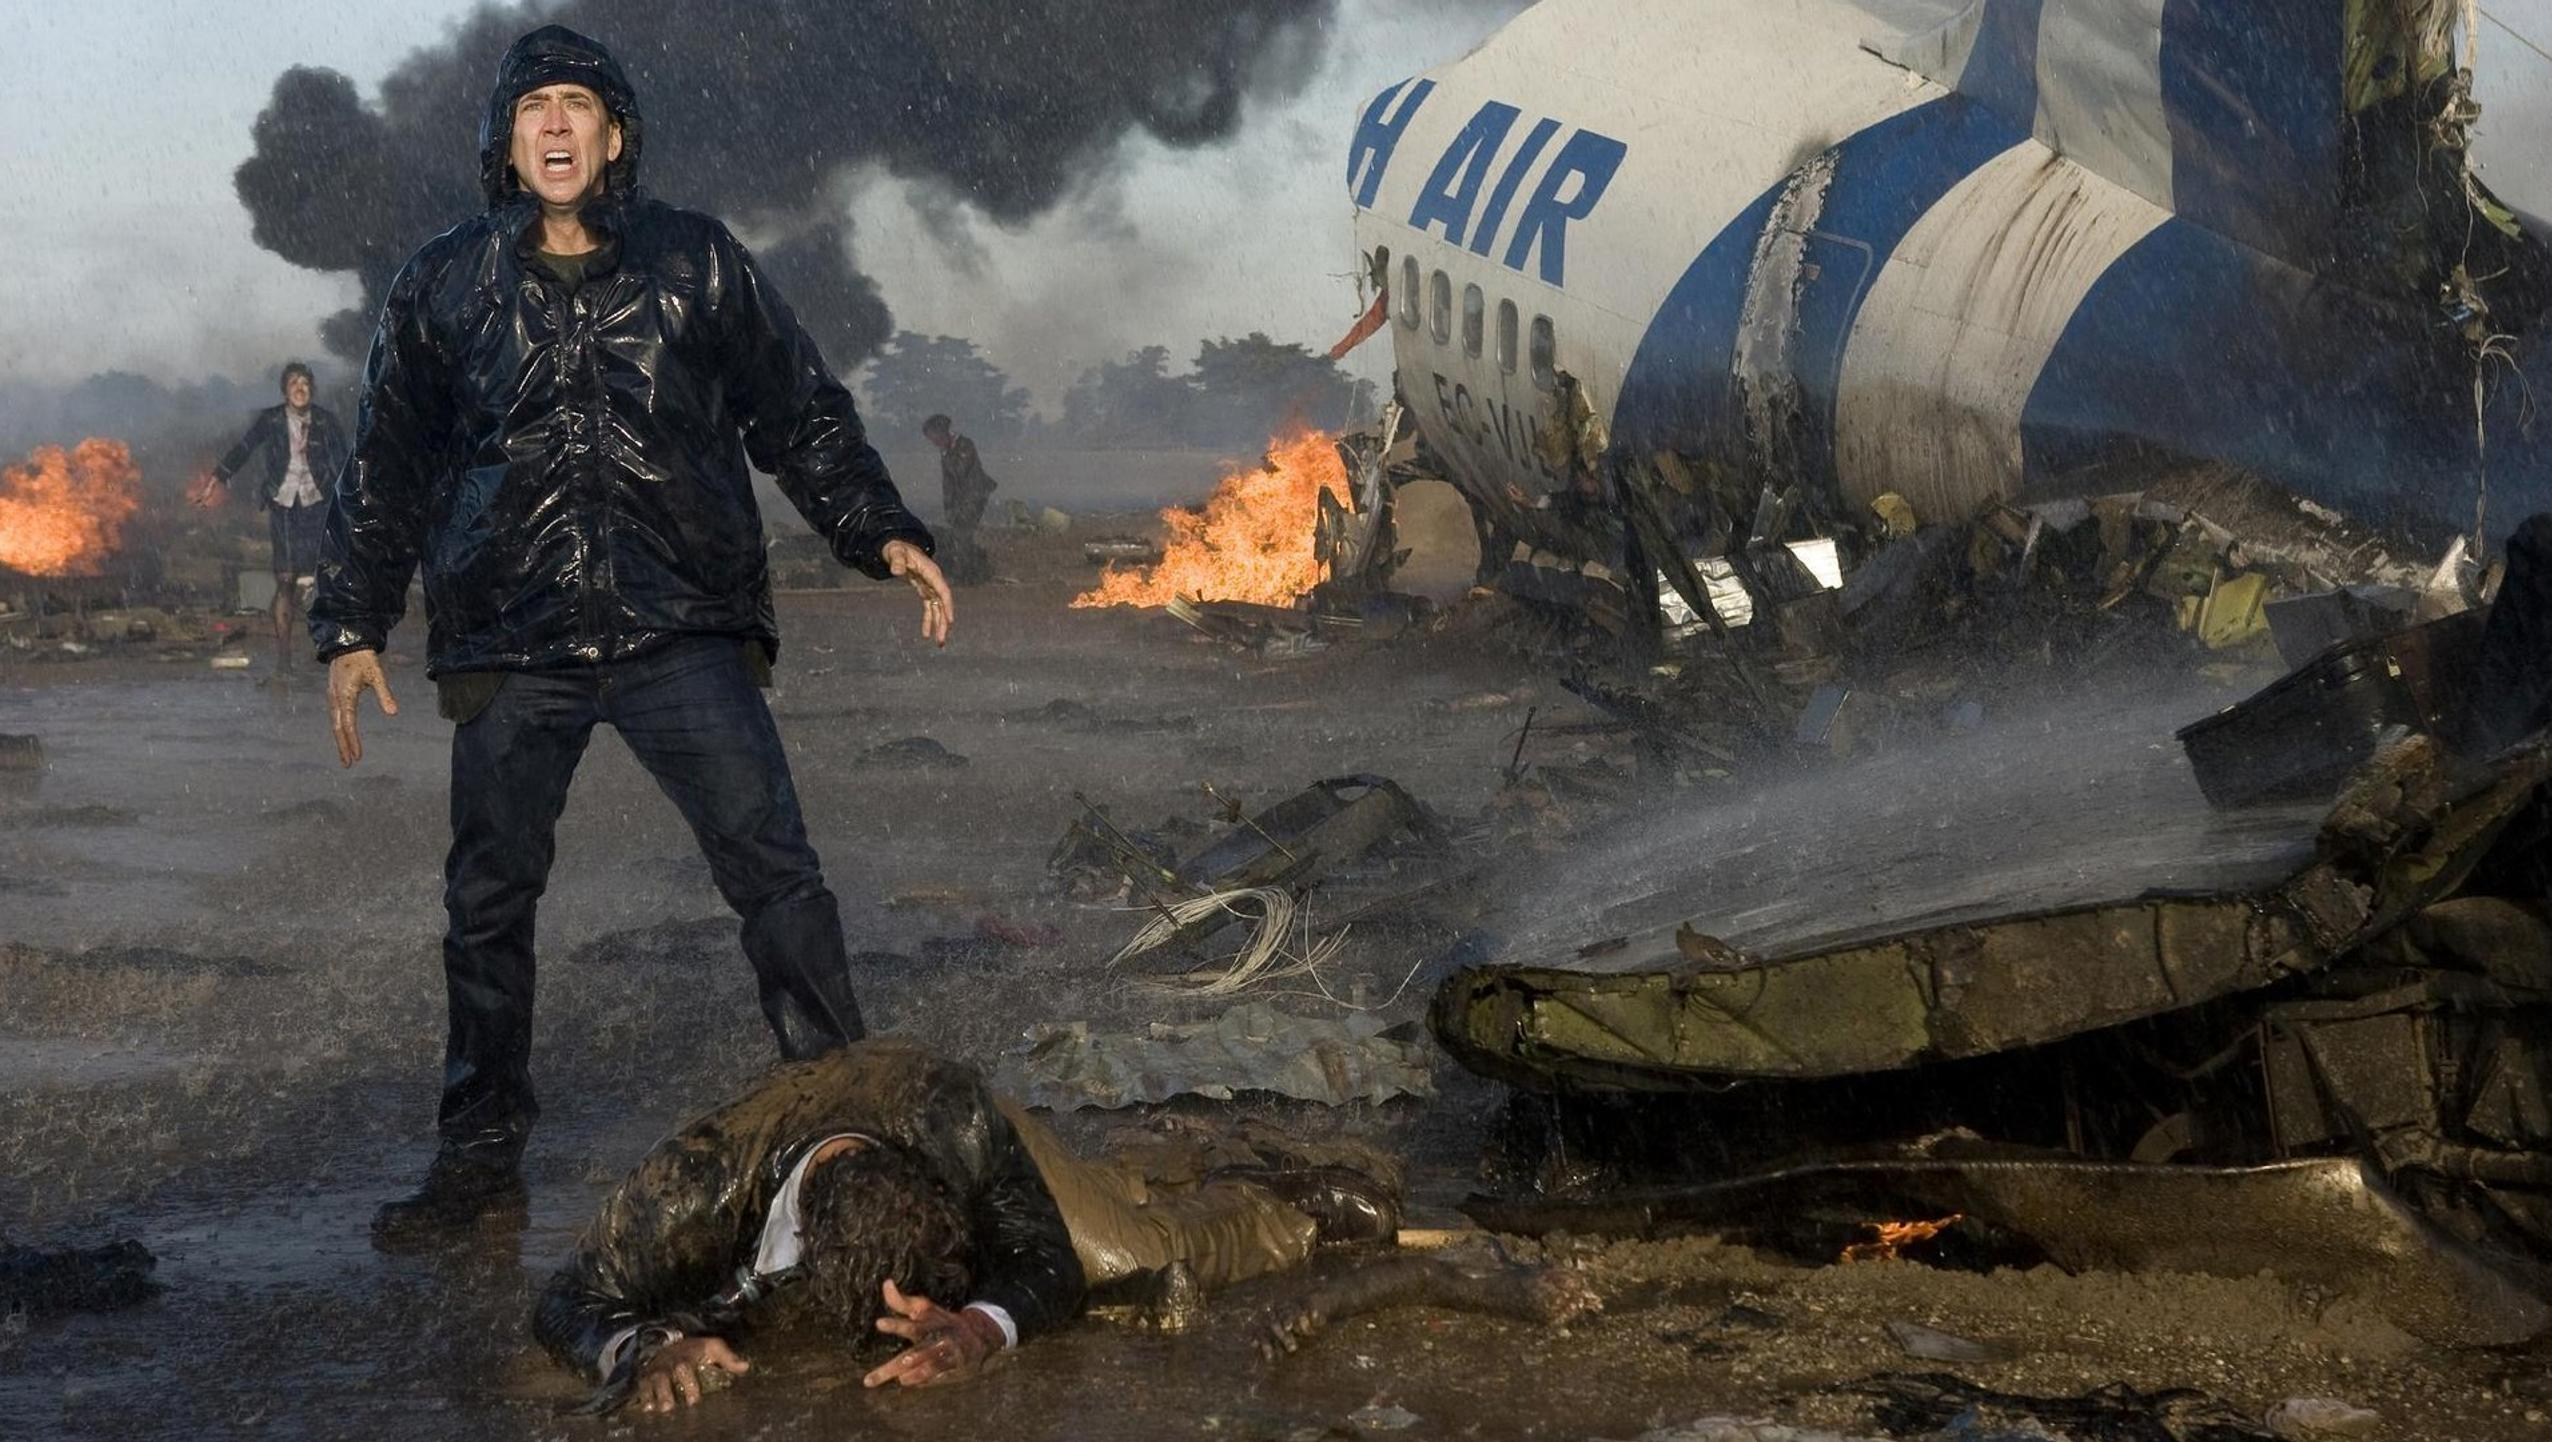 Nicolas Cage at the site of an airline disaster in Knowing (2009)